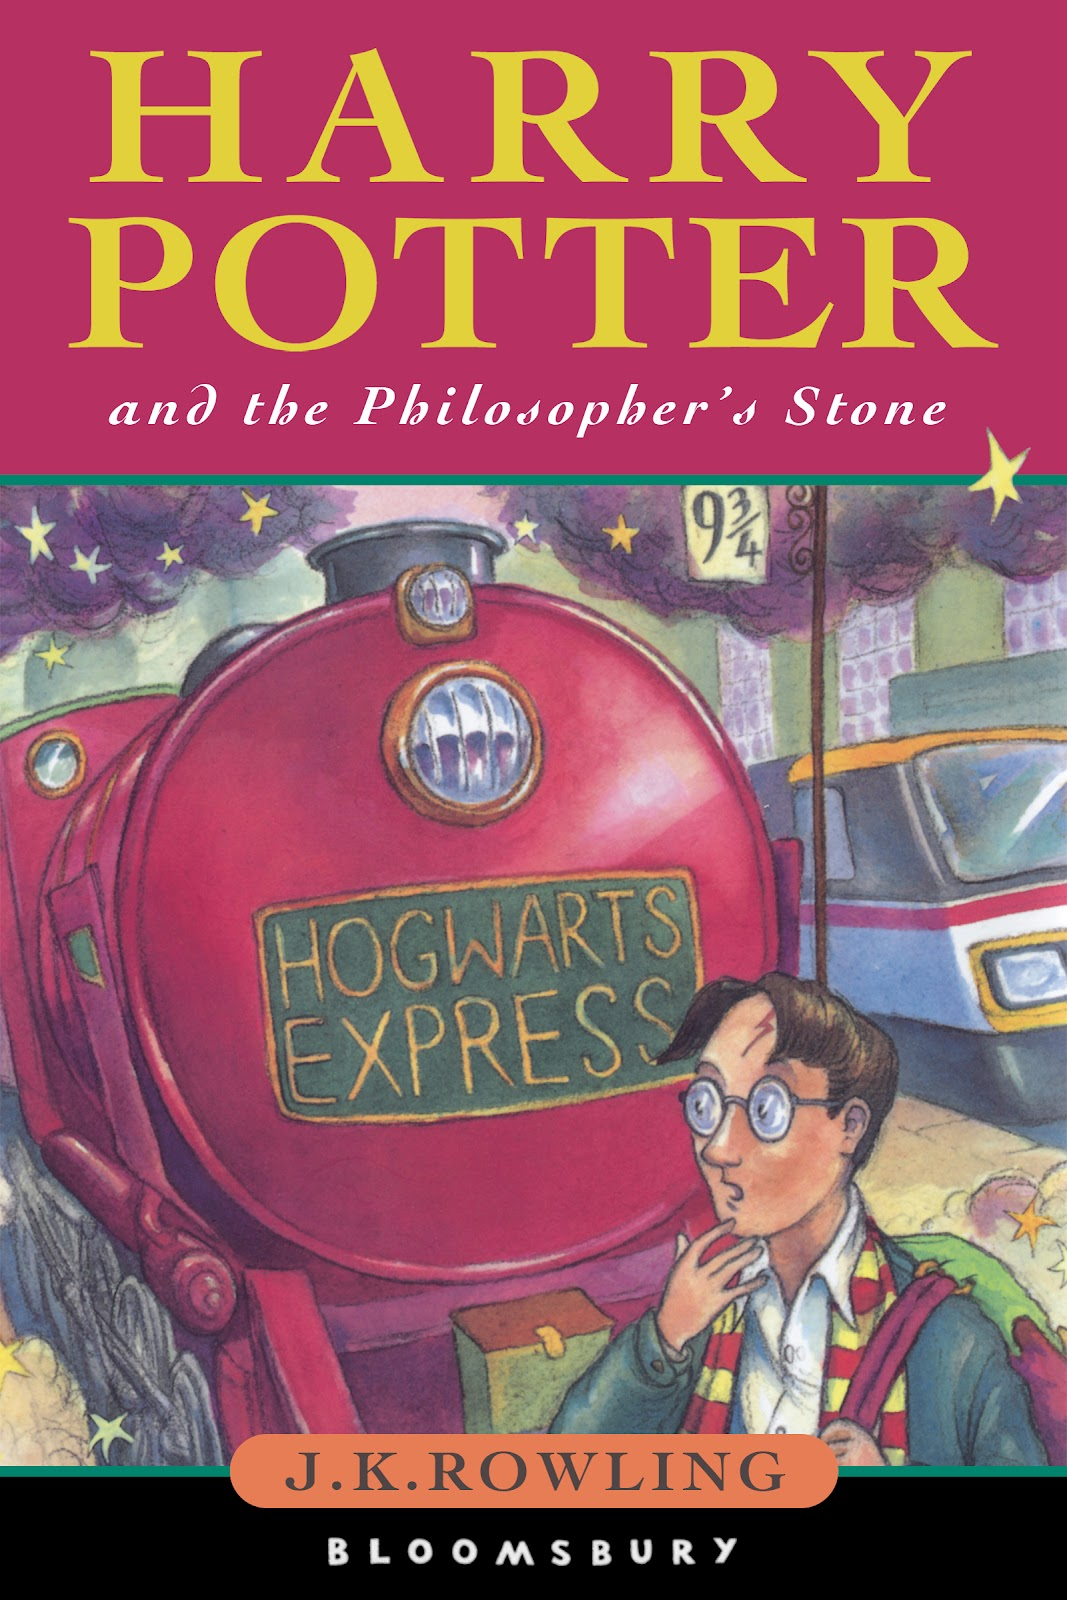 http://3.bp.blogspot.com/-tcdlJxjn-cE/UDJOzEF_RMI/AAAAAAAAAFw/398jyh9R2UA/s1600/Harry-Potter-And-The-Philosophers-Stone_novel.jpg